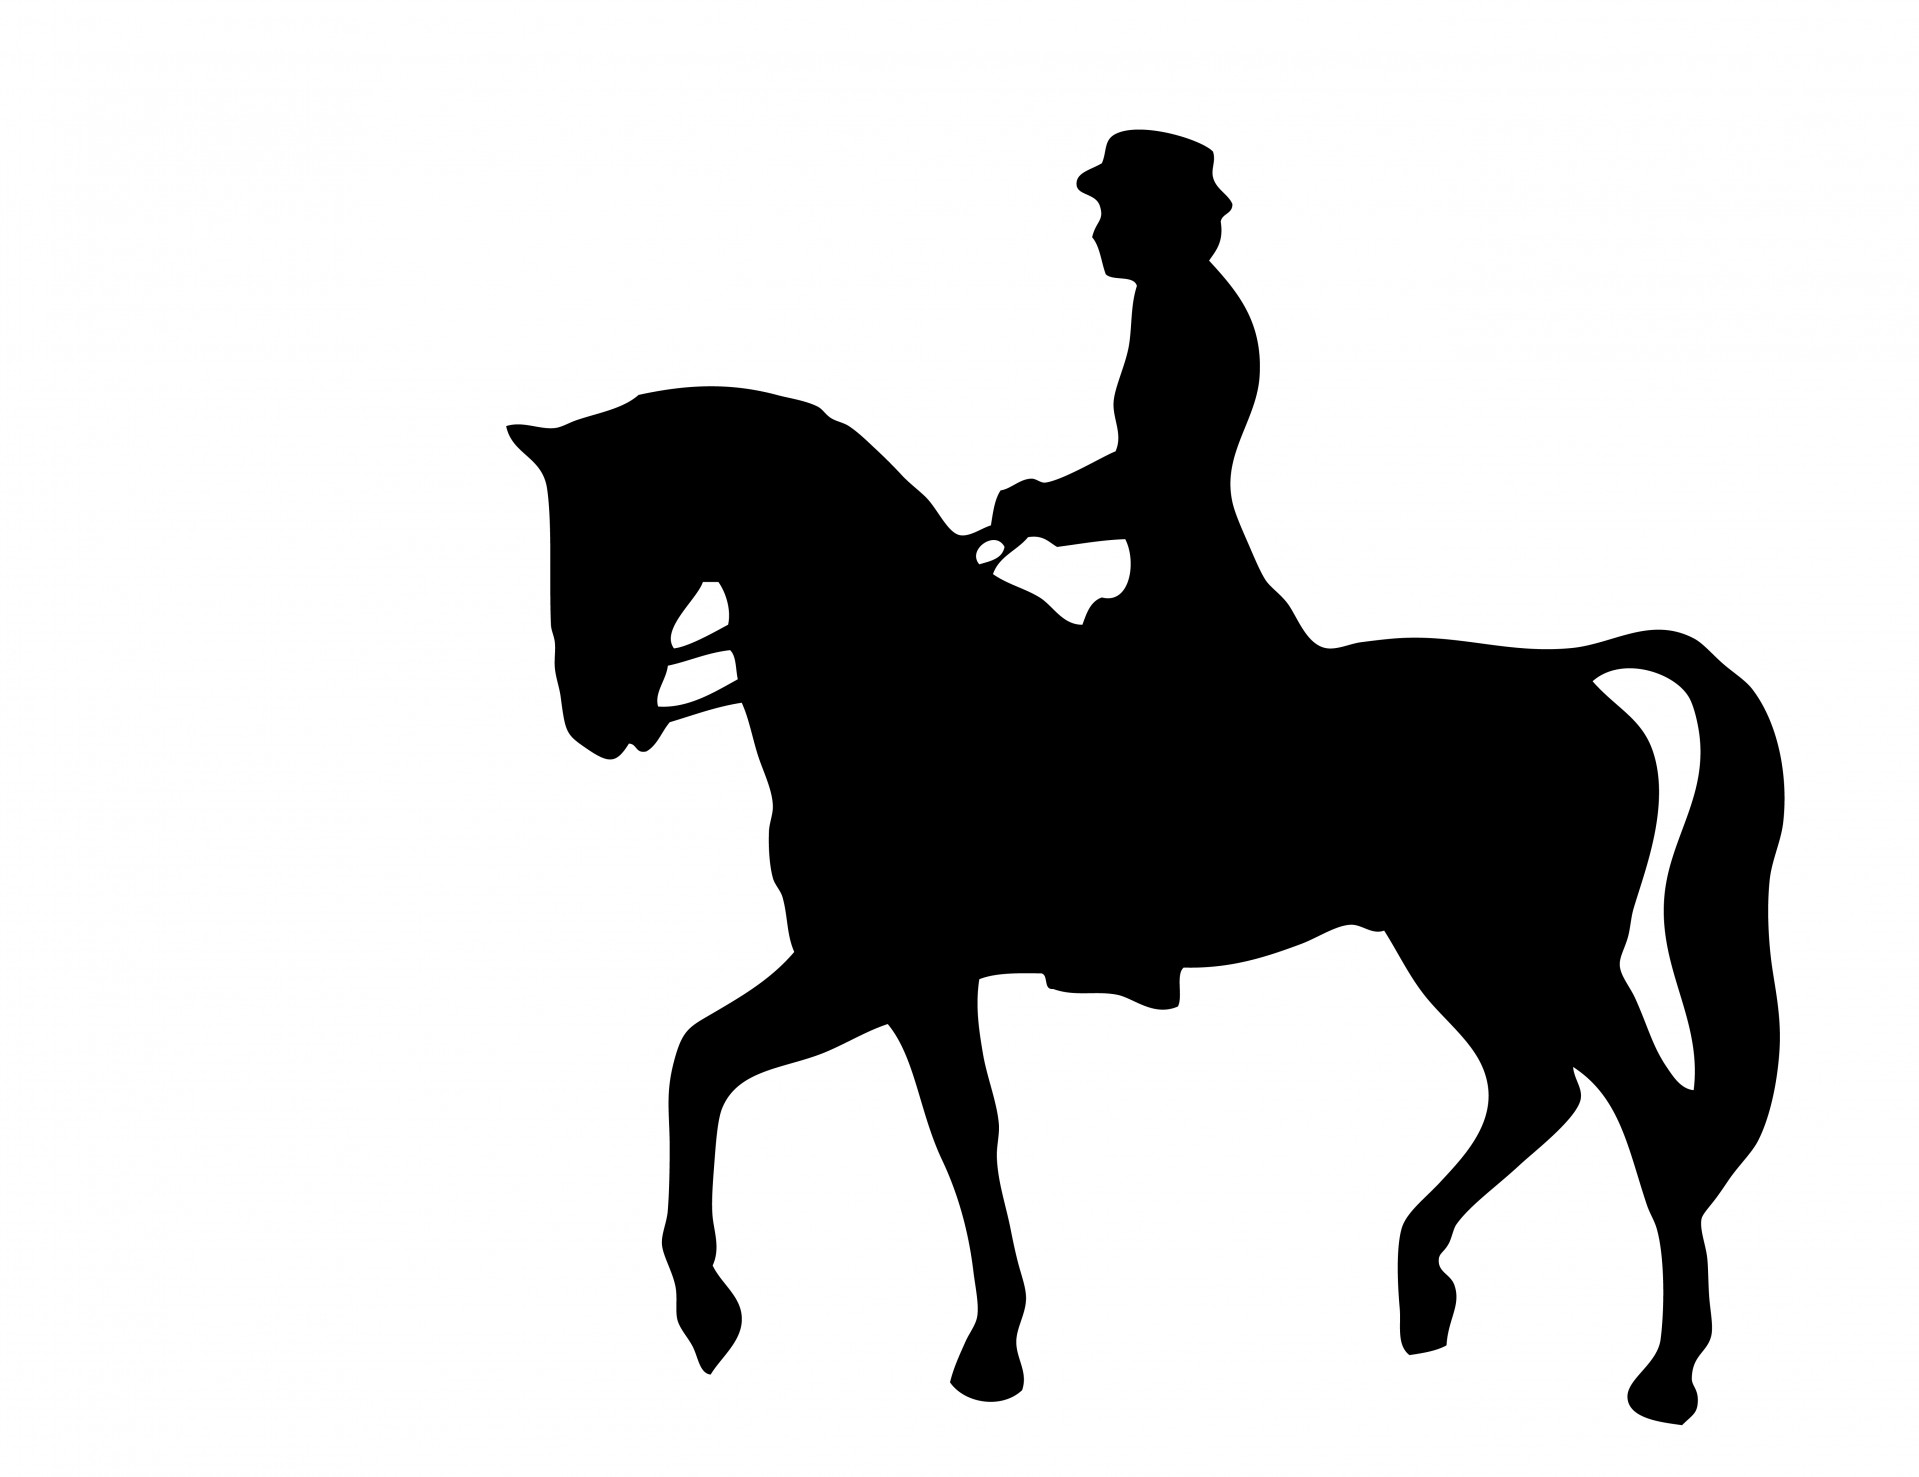 Riding clipart horse rider. Silhouette free stock photo image library download